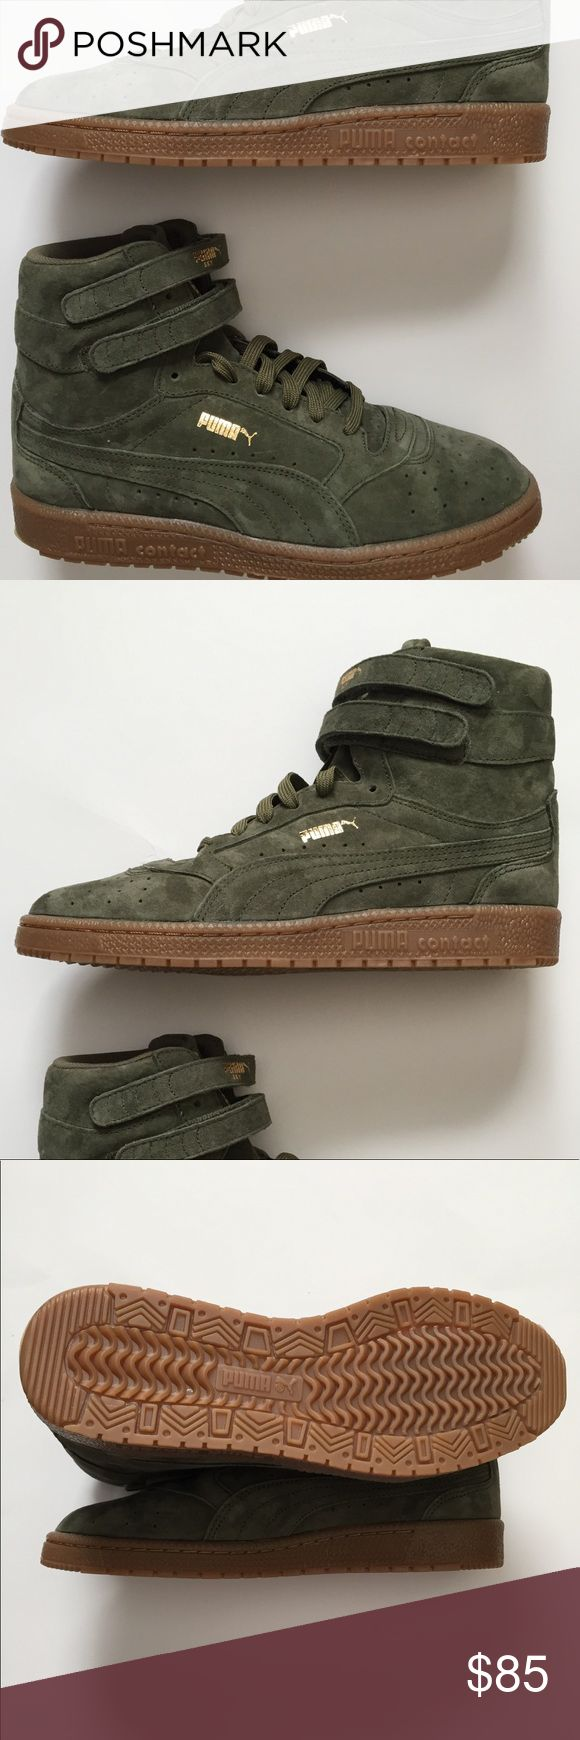 🆕Puma Ski II High Olive High Top Sneakers 6.5 New without box! Women's PUMA Athletic Shoes  Size 6.5M  Style 364395-02 Sky II Hi Nubuck Women's Sneakers First introduced in 1980 and played on the court by all-stars, the Sky II Hi was PUMA's original basketball shoe. This re-issue brings the OG silhouette to life in all-over nubuck. Features: Nubuck upper Lace closure for a snug fit Dual hook-and-loop straps for a signature look Rubber outsole for grip PUMA Formstrip at both sides PUMA Logo…